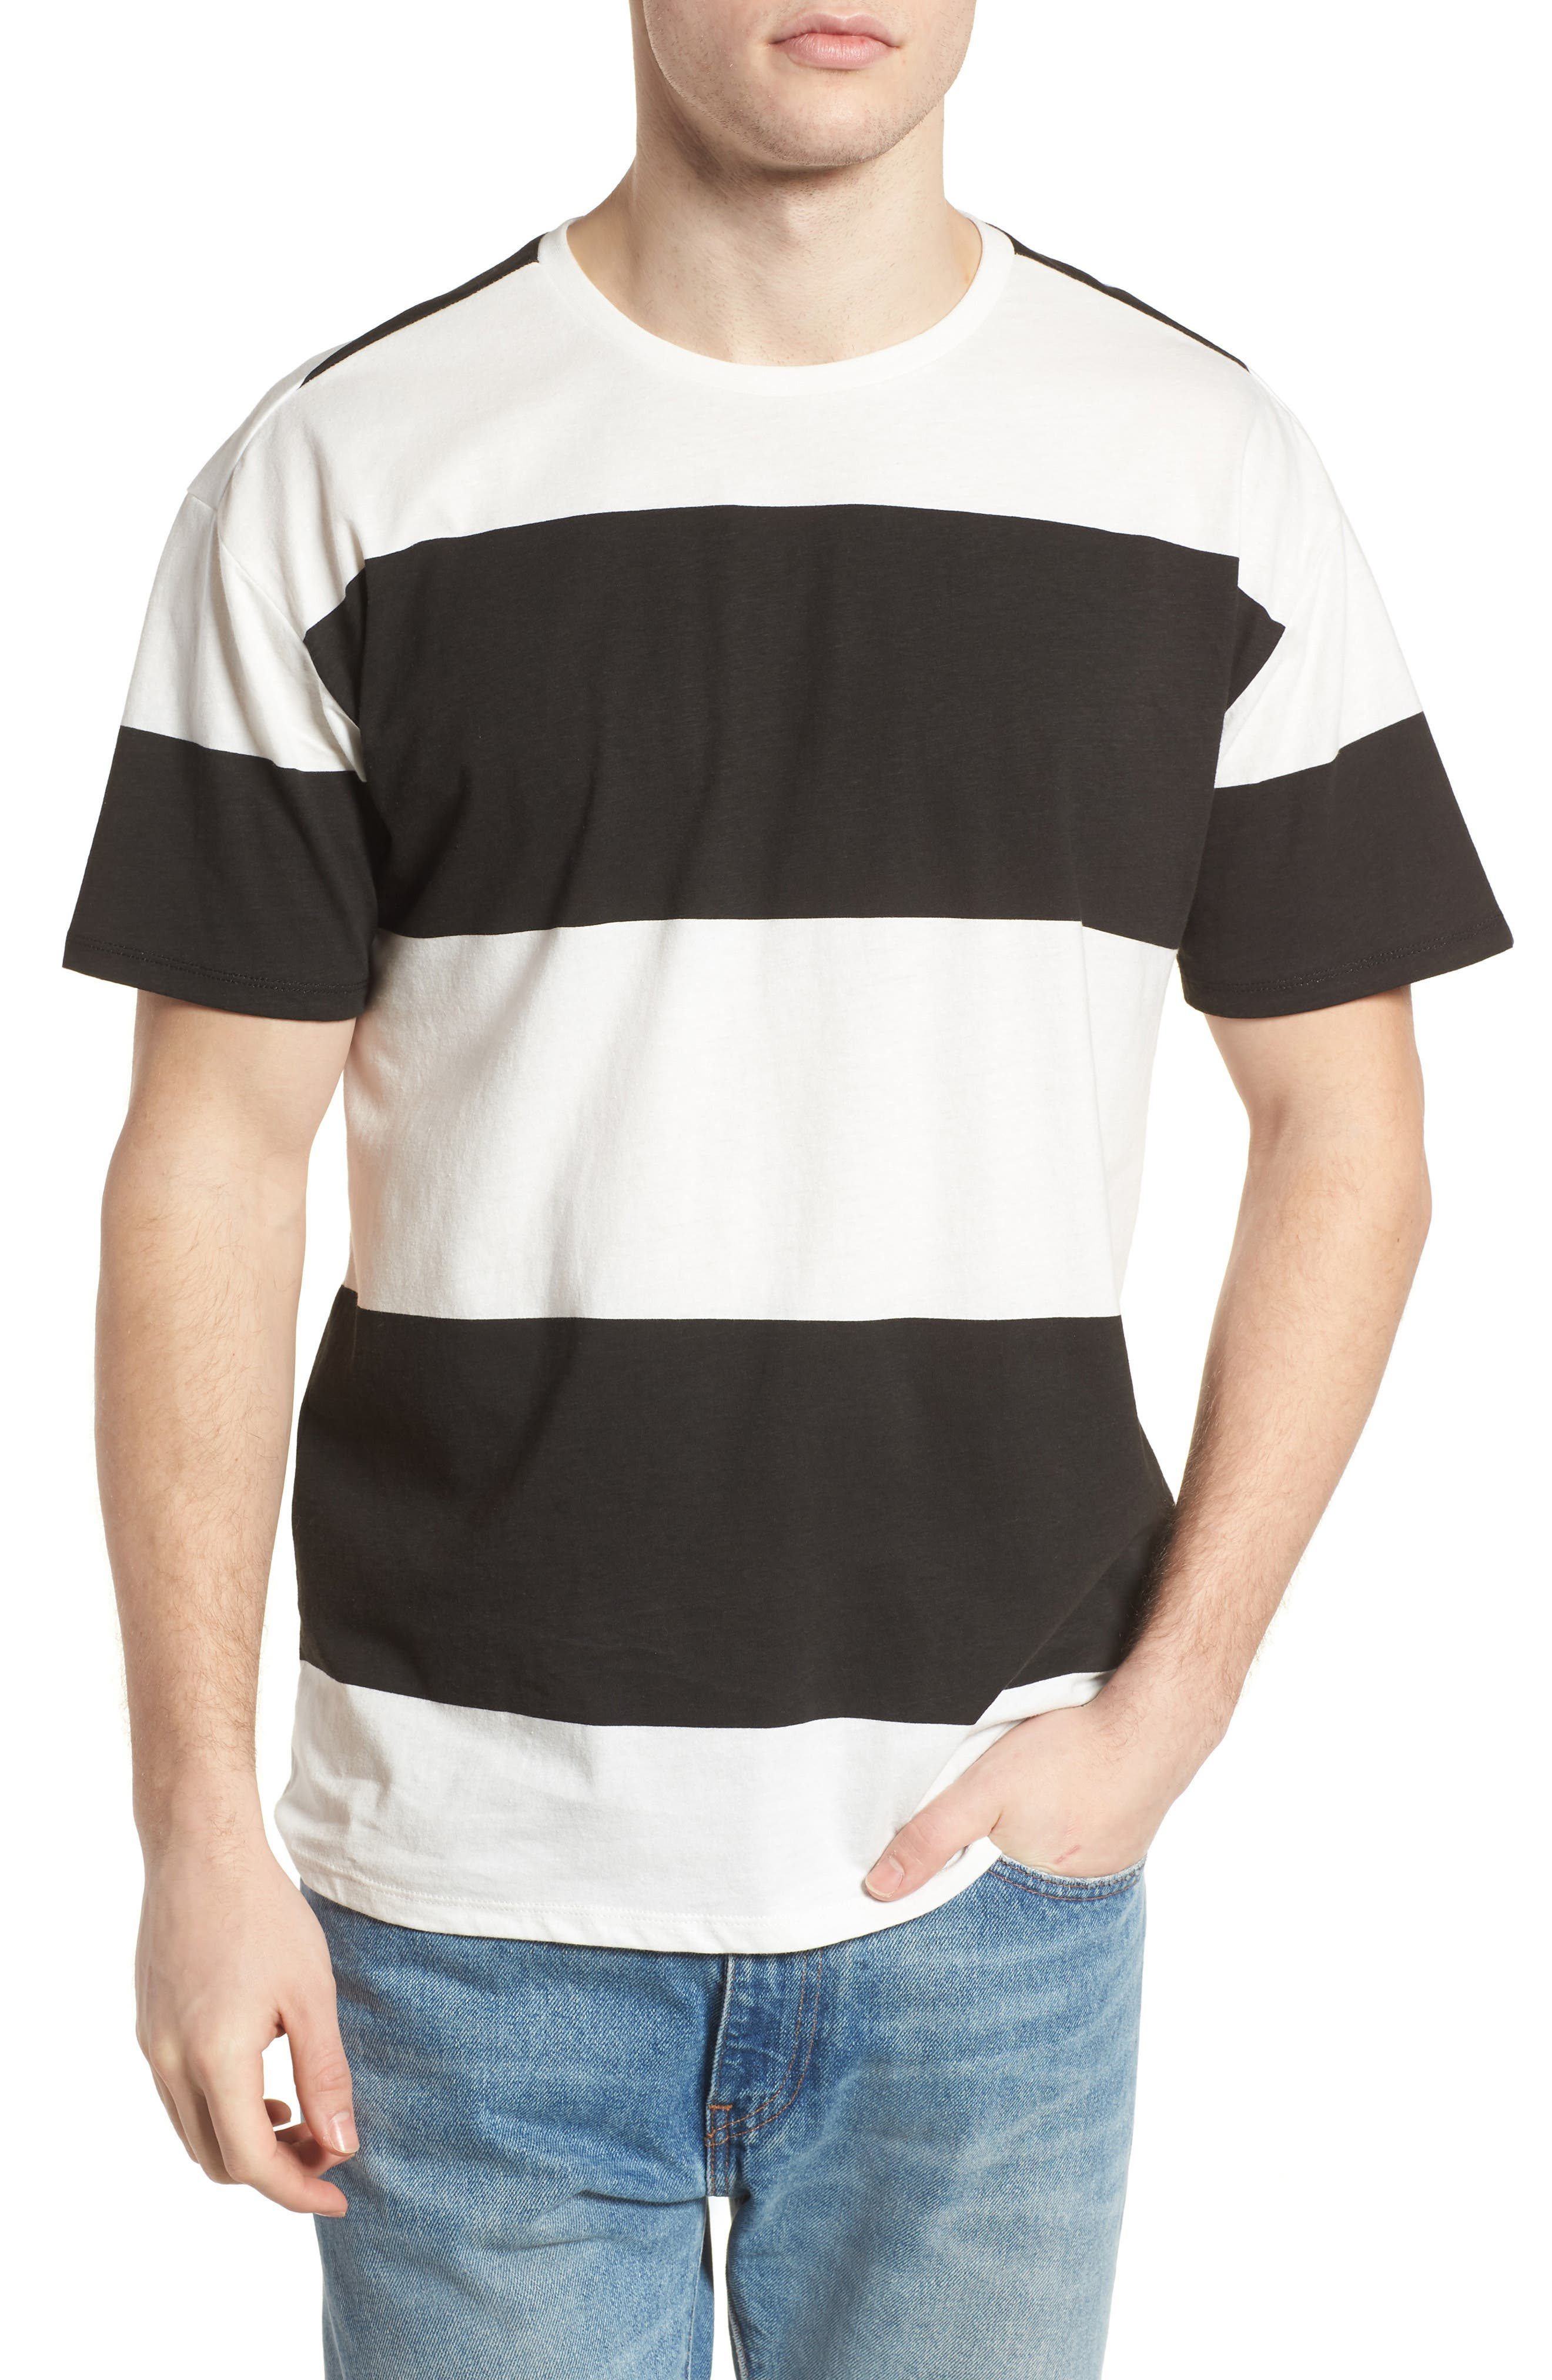 Rugby T-Shirt,                             Main thumbnail 1, color,                             133